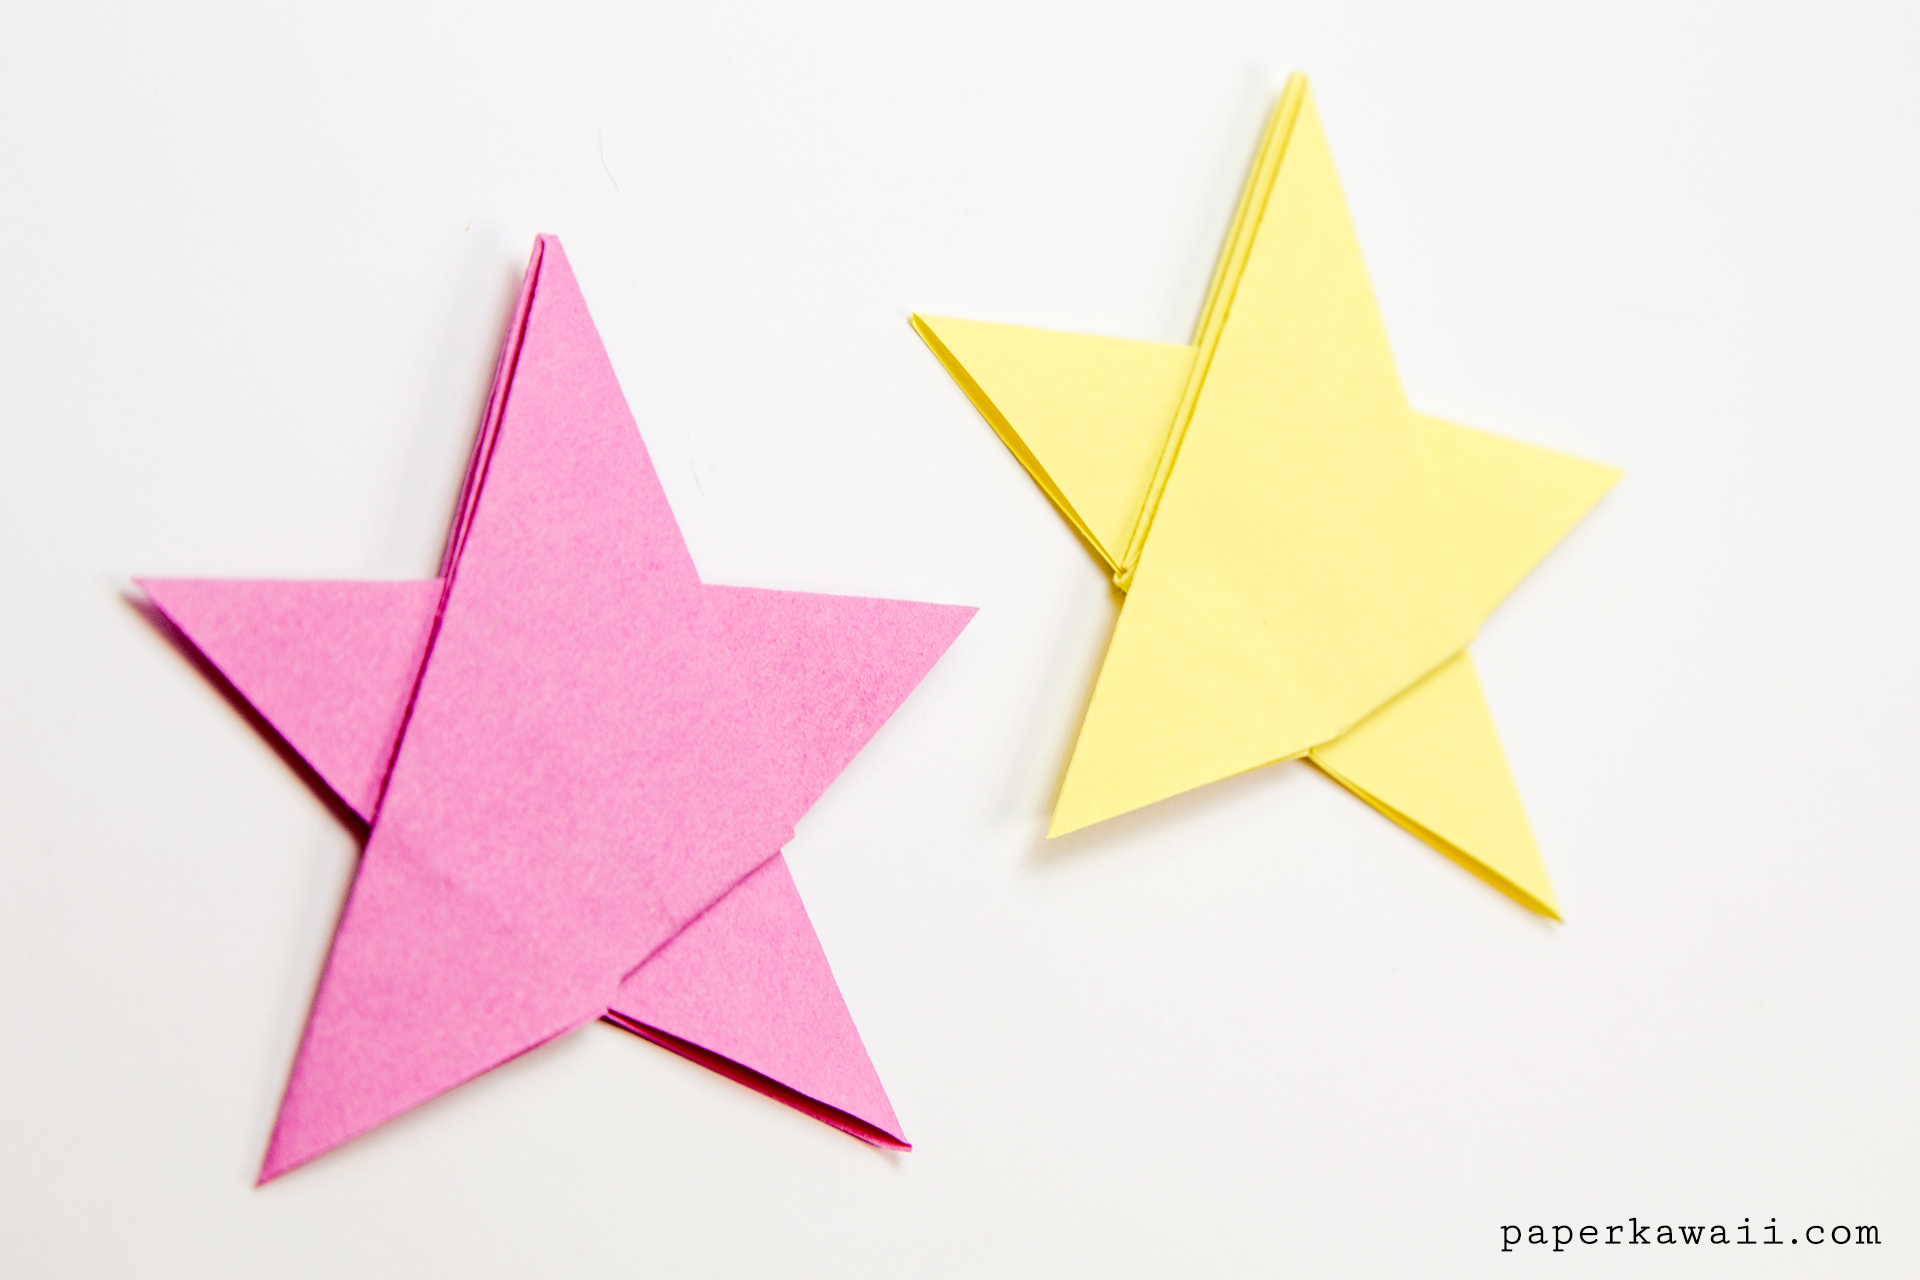 Easy Origami Diagrams Simple Origami 5 Point Star Tutorial 1 Sheet Paper Kawaii